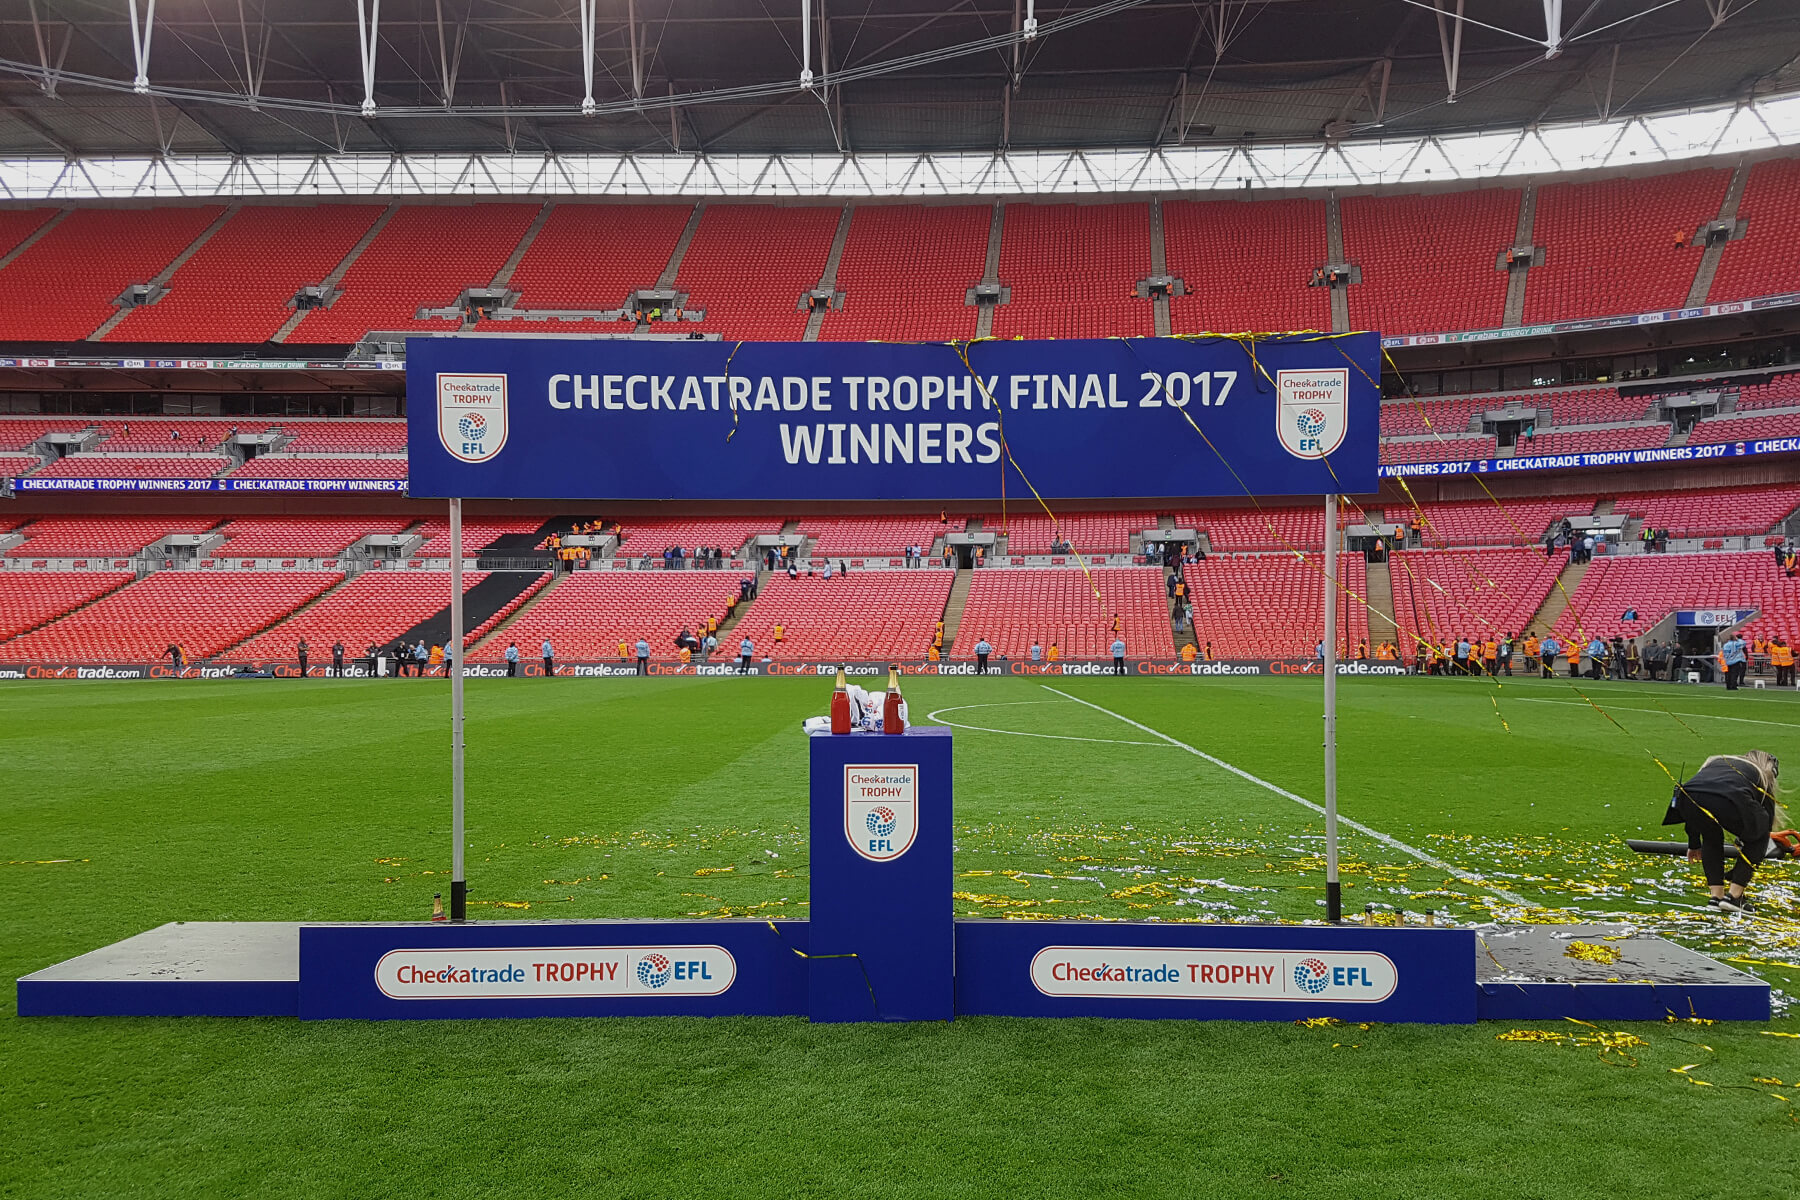 Centre Plinth Winners Board Podium at Checkatrade Trophy Final 2017